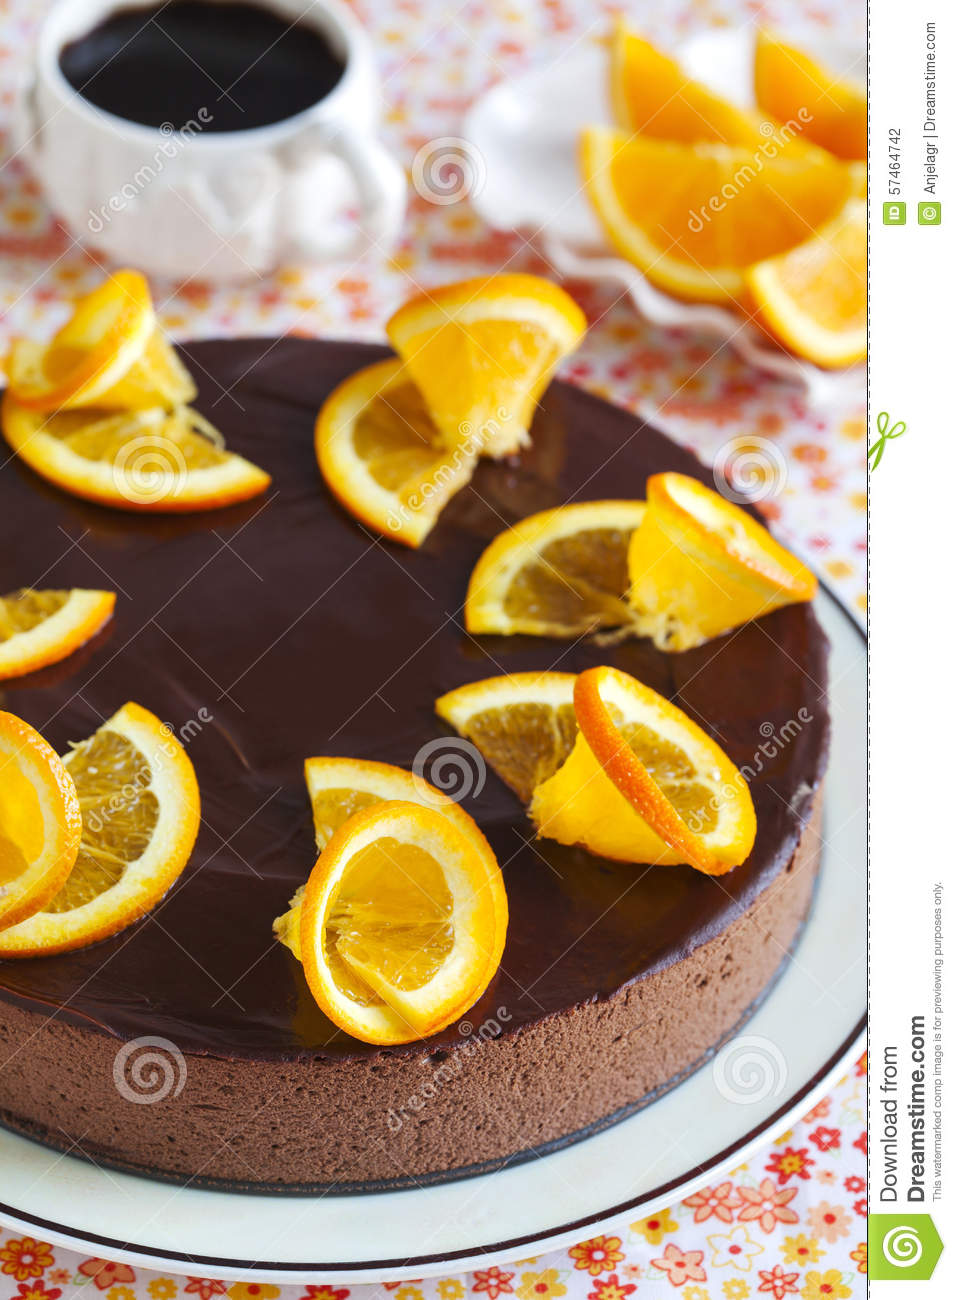 Orange Chocolate Mousse Cake Stock Photo - Image: 57464742